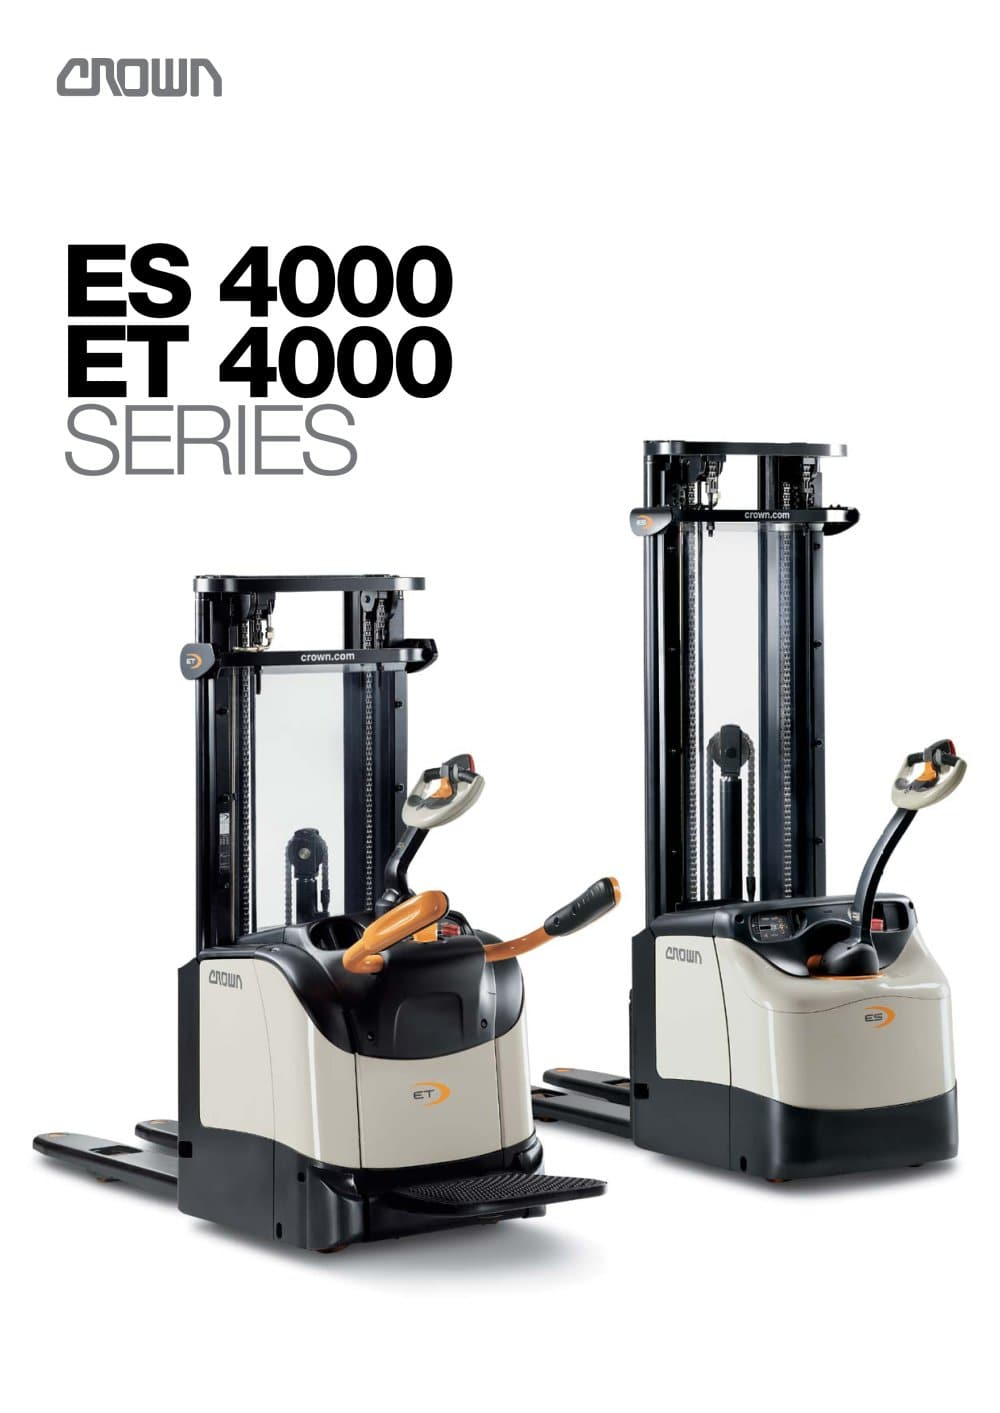 Stacker ES 4000 - 1 / 8 Pages